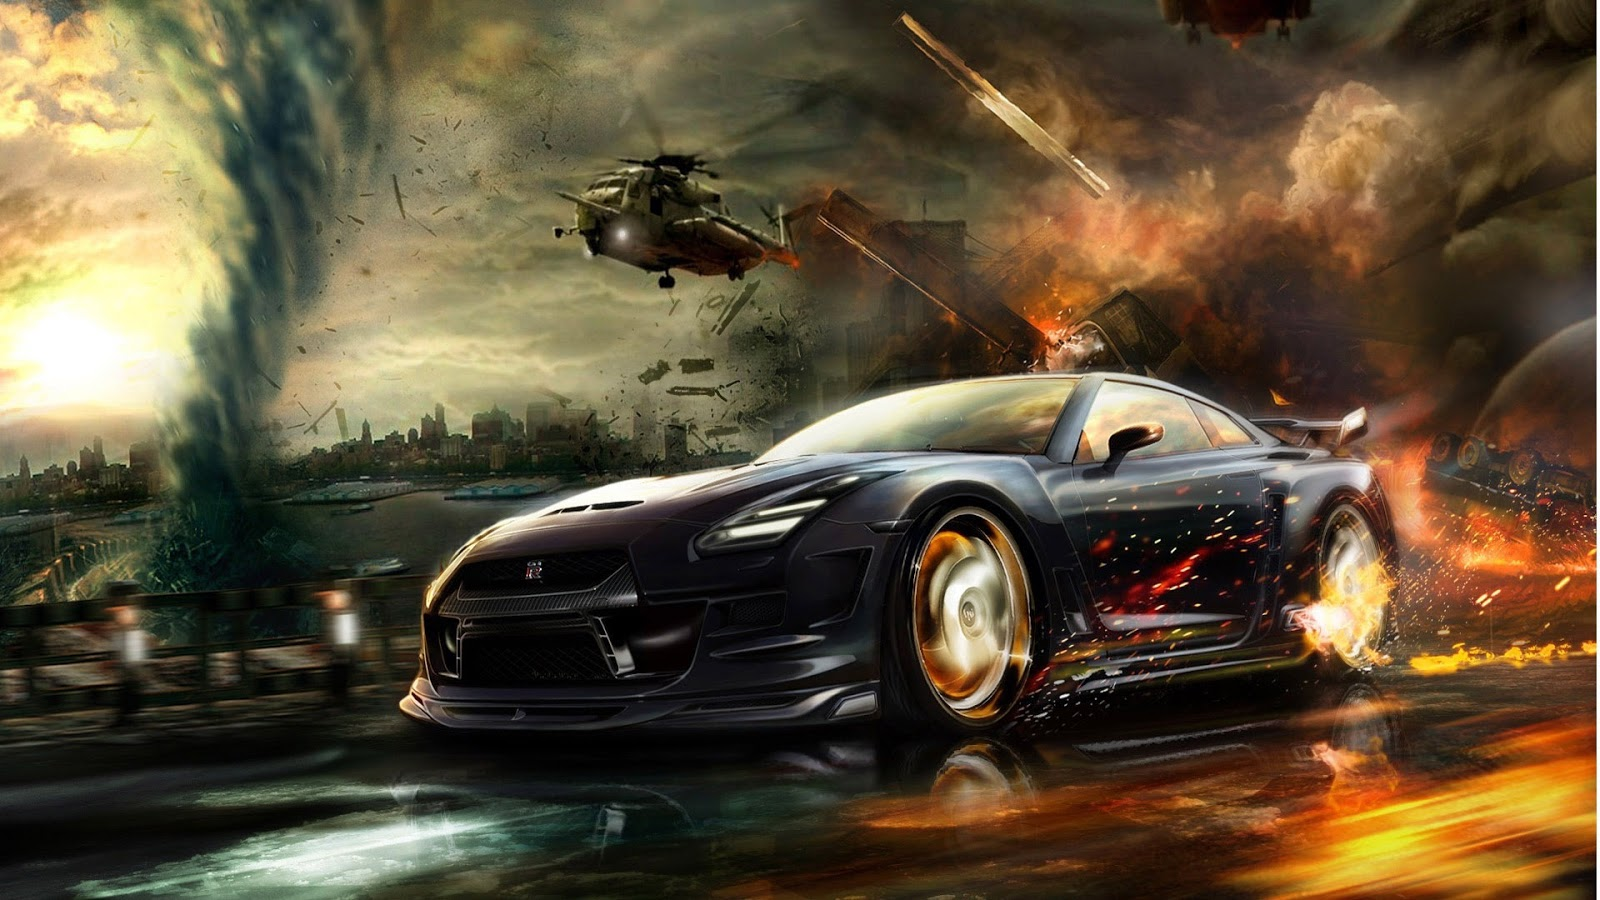 Cool Cars Wallpaper | Cool Cars Backgrounds and Images (48